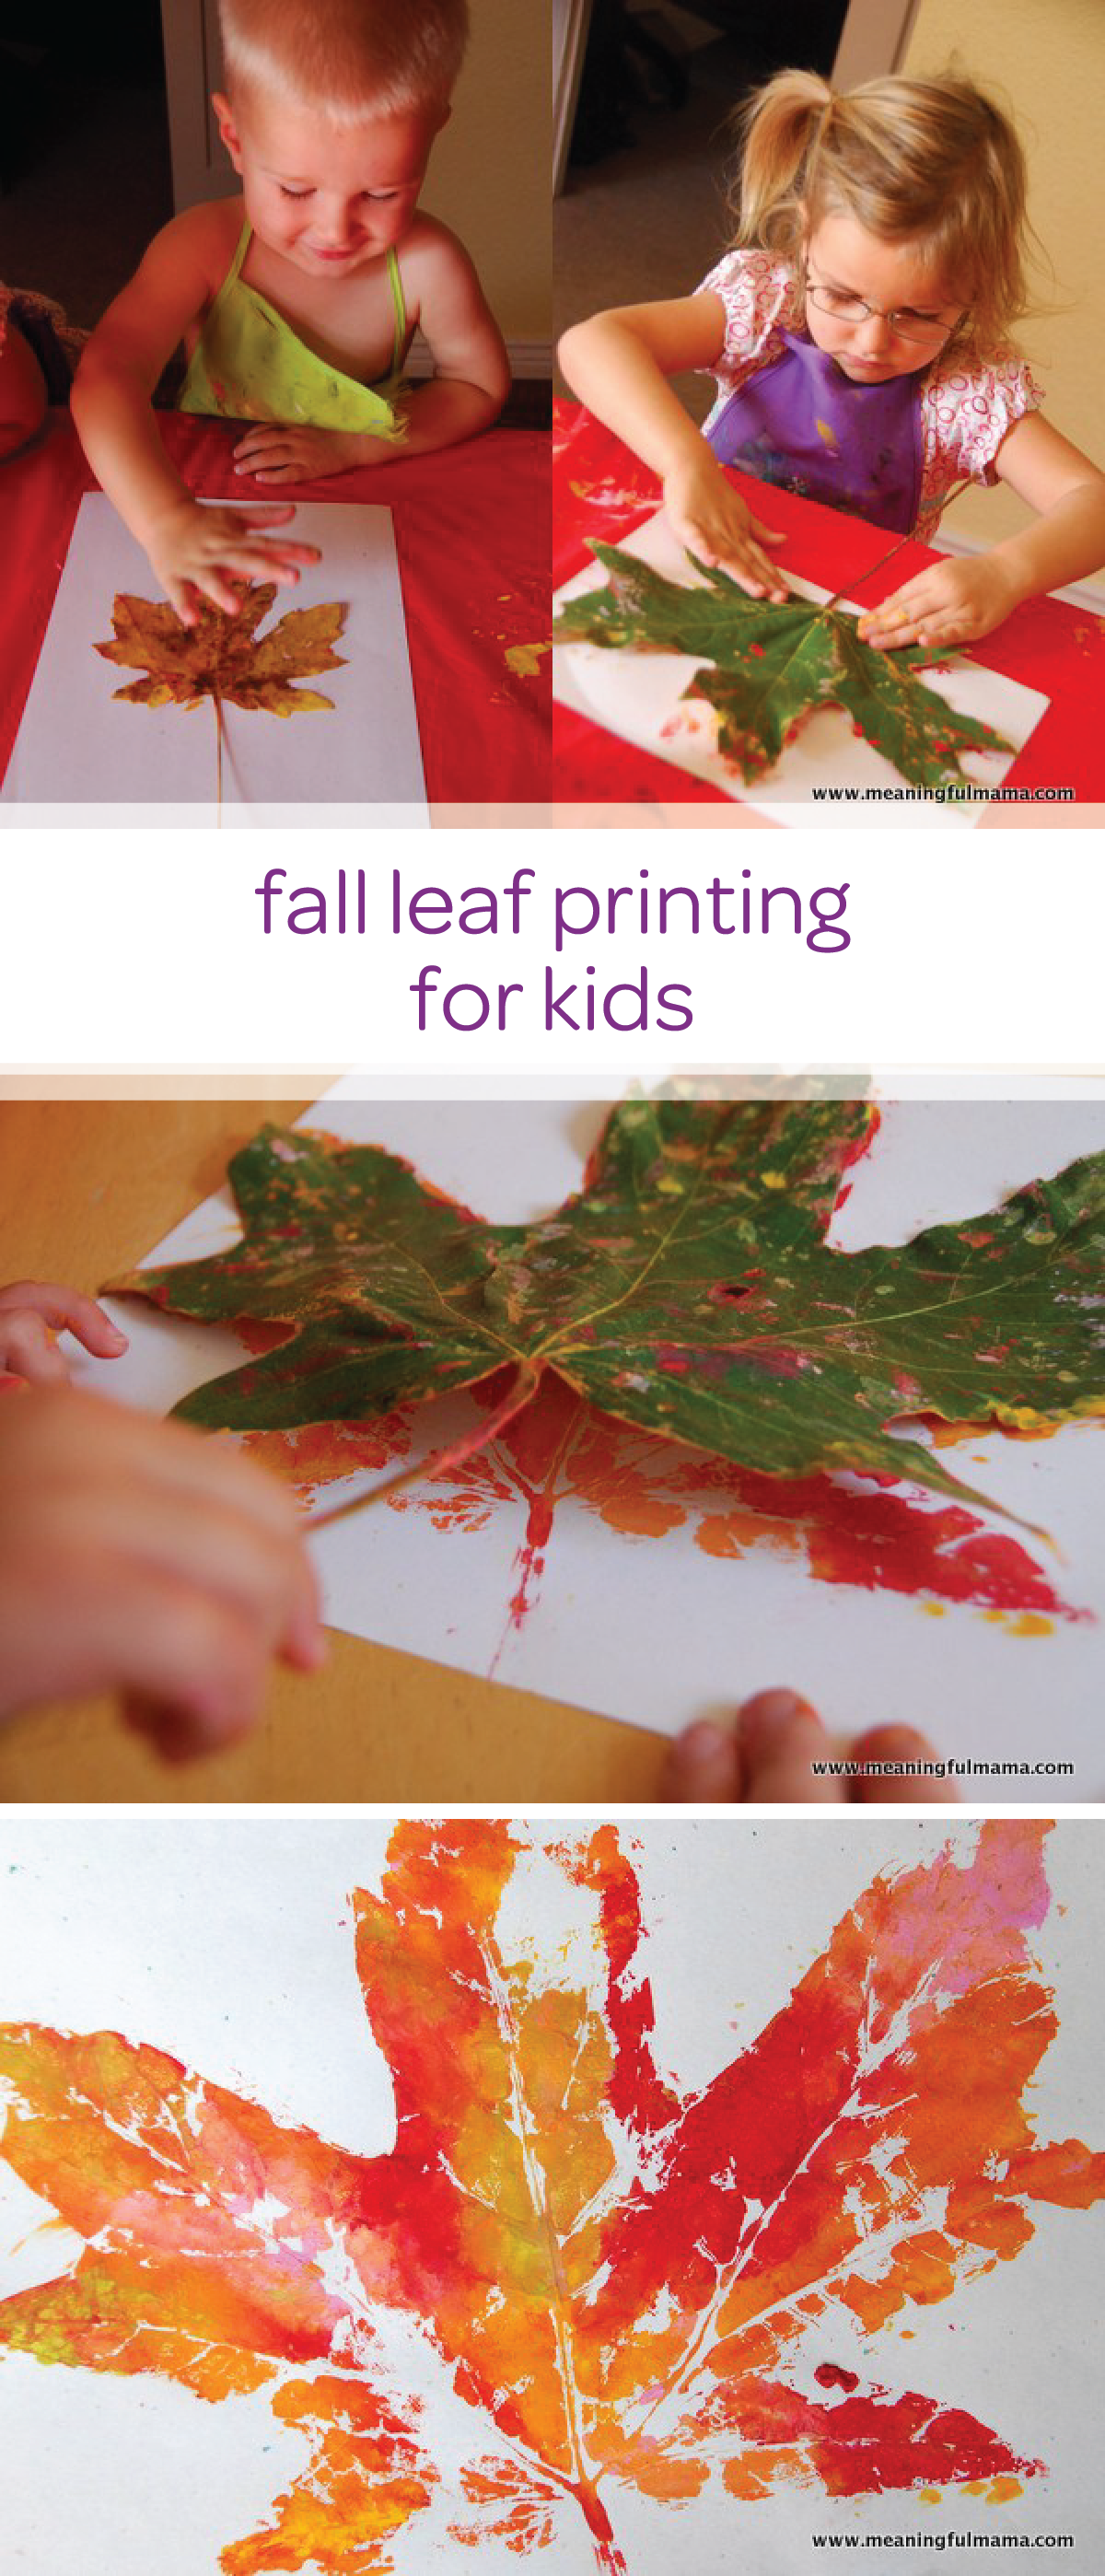 How To Make Diy Fall Leaf Prints With Kids How To Make Diy